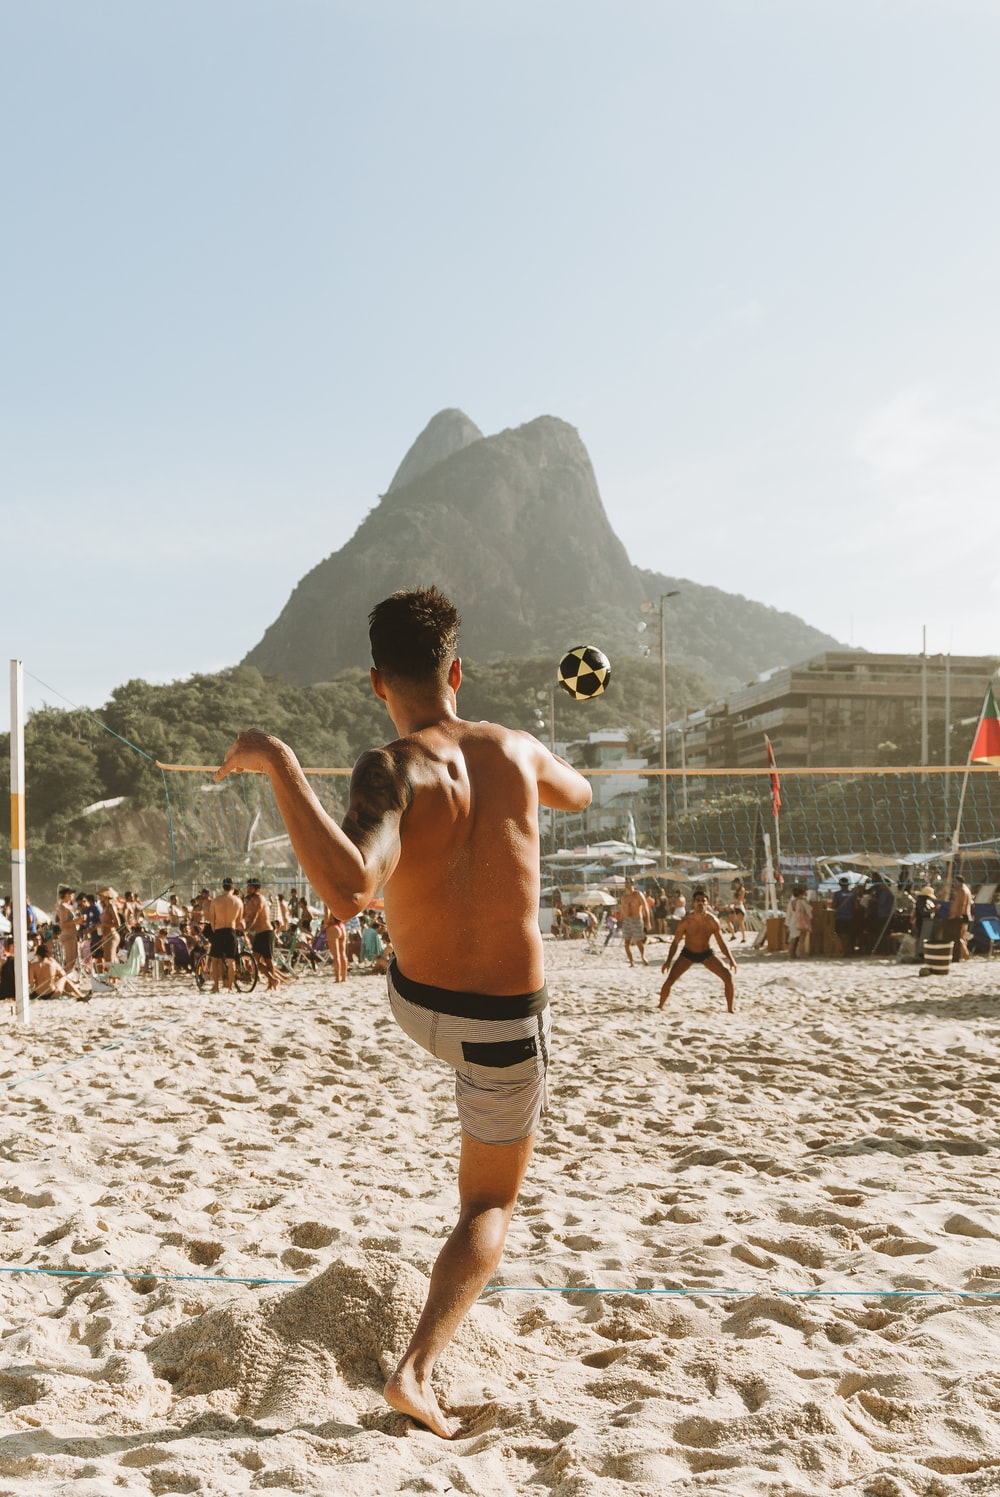 topless man in black shorts running on white sand during daytime